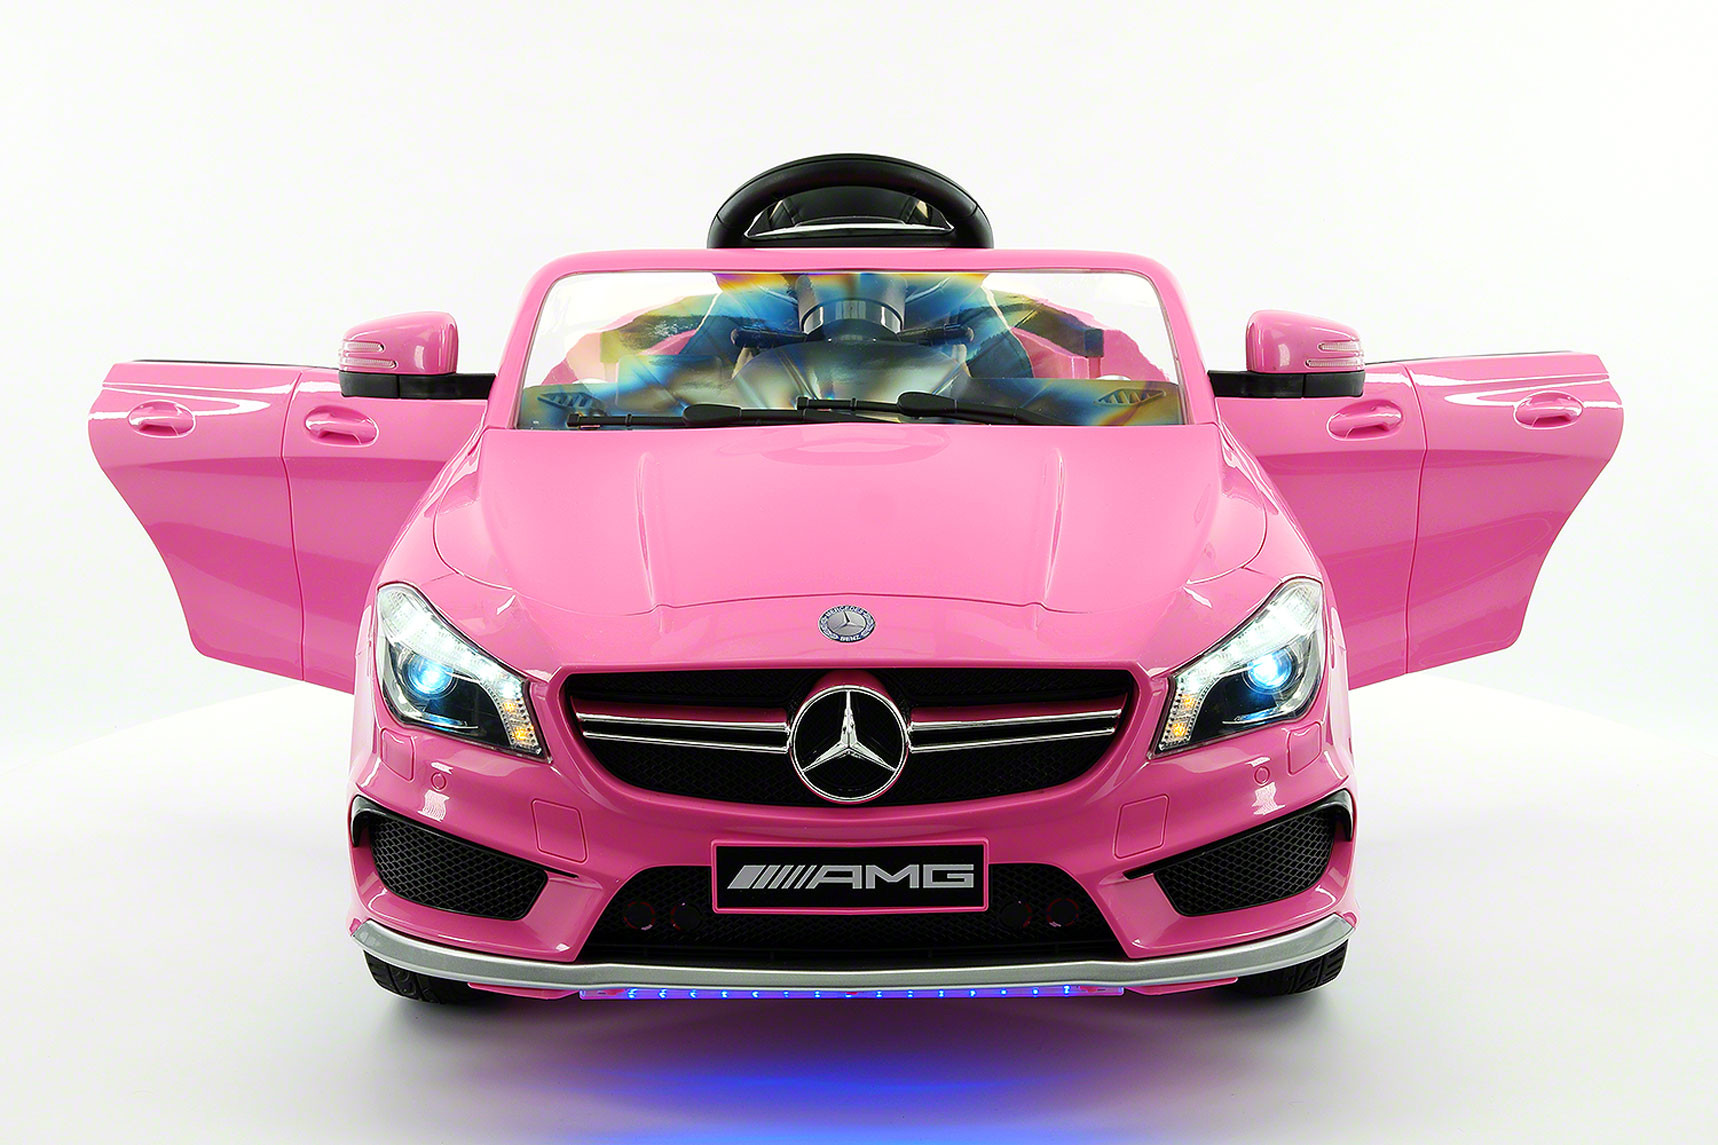 Mercedes CLA45 AMG 12V Kids Ride-On Car with Parental Remote | Pink by Moderno Kids